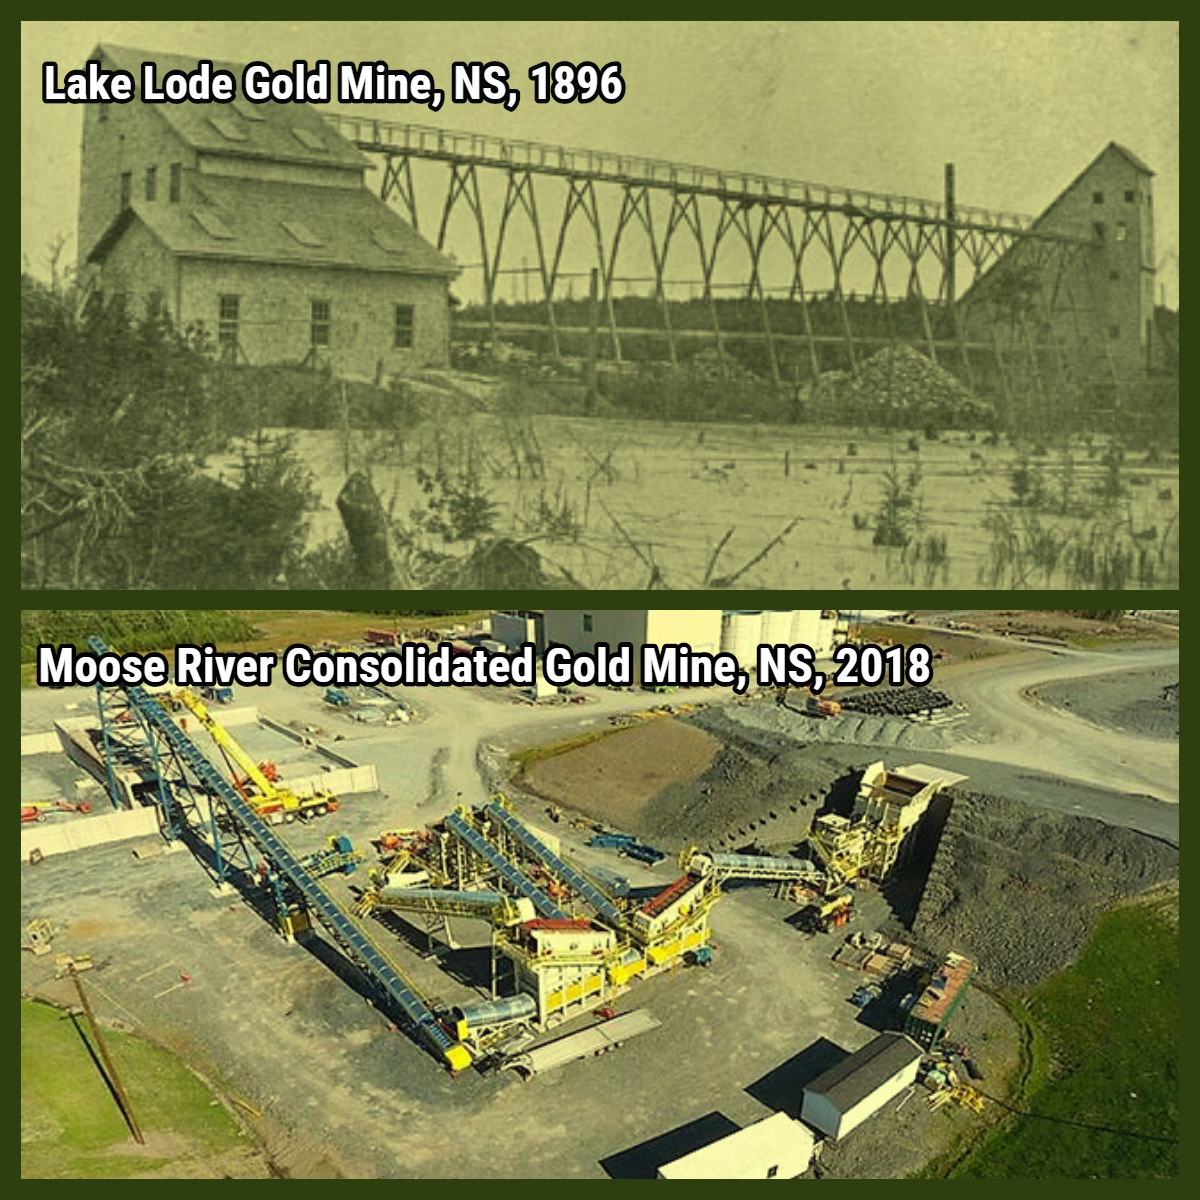 Gold And Silver Mining In Panama Mail: Fool's Gold: Nova Scotia's Myopic Pursuit Of Metals